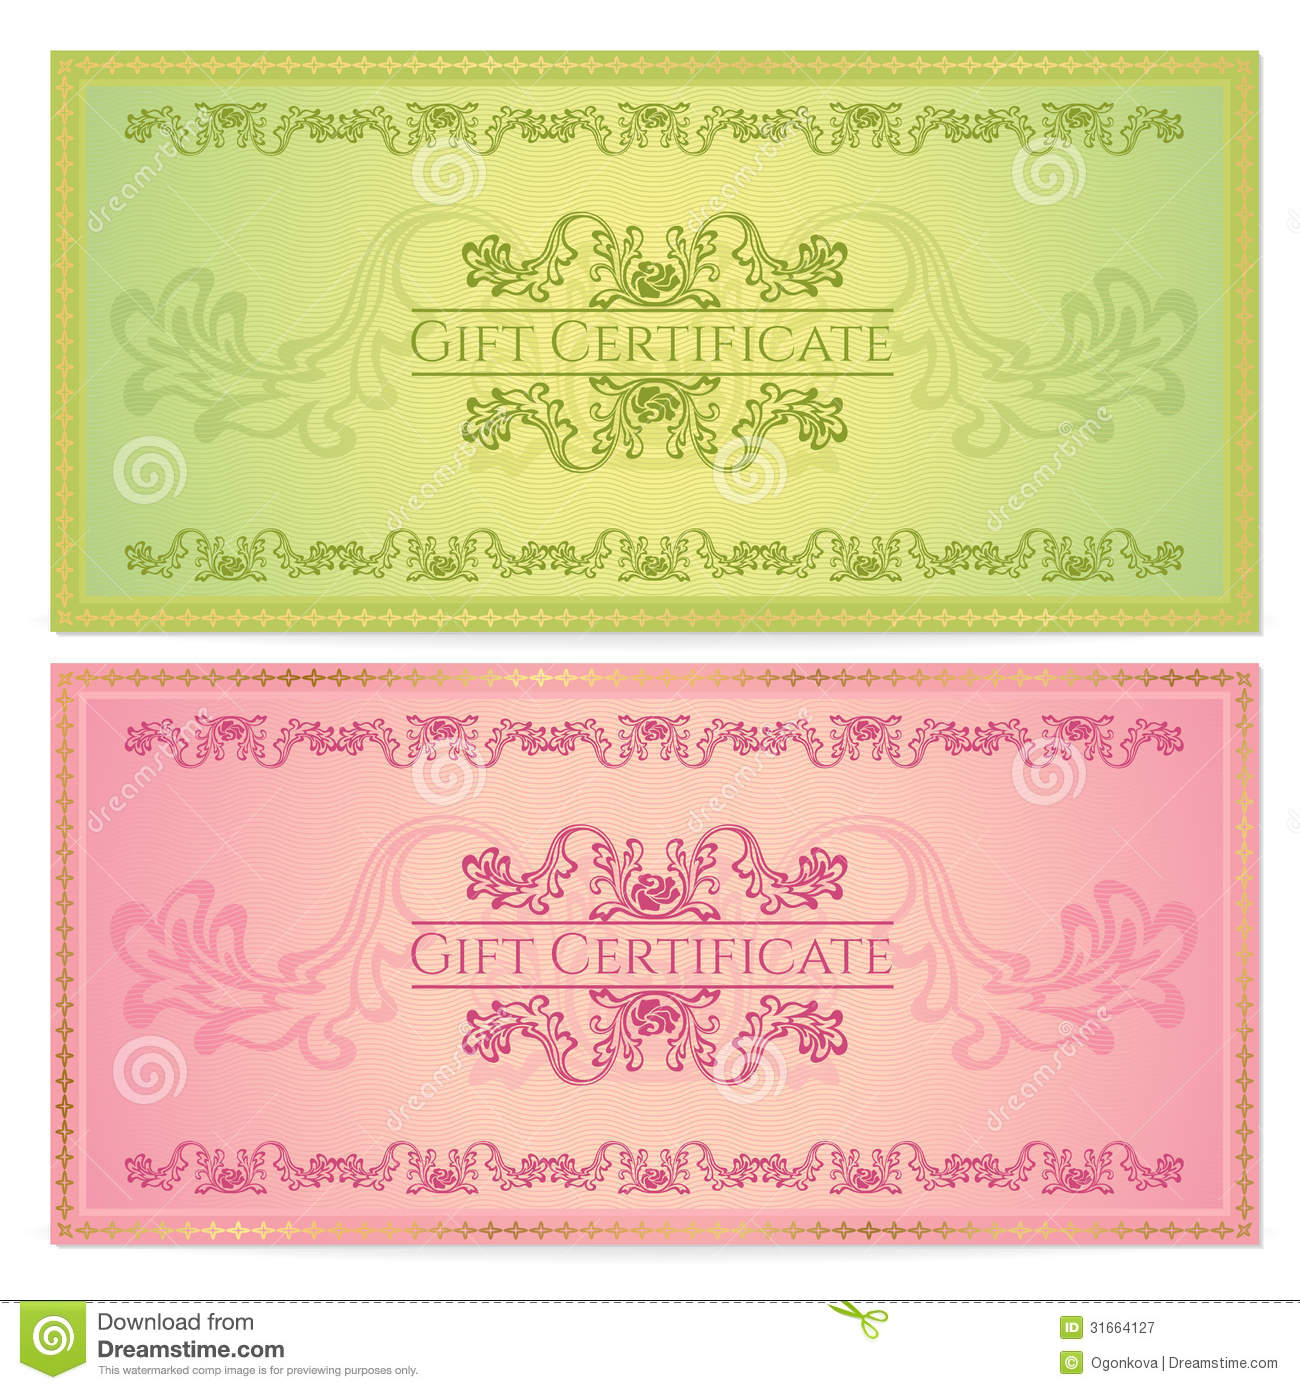 Gift certificate voucher coupon template stock vector gift certificate voucher coupon template royalty free stock photo 1betcityfo Images